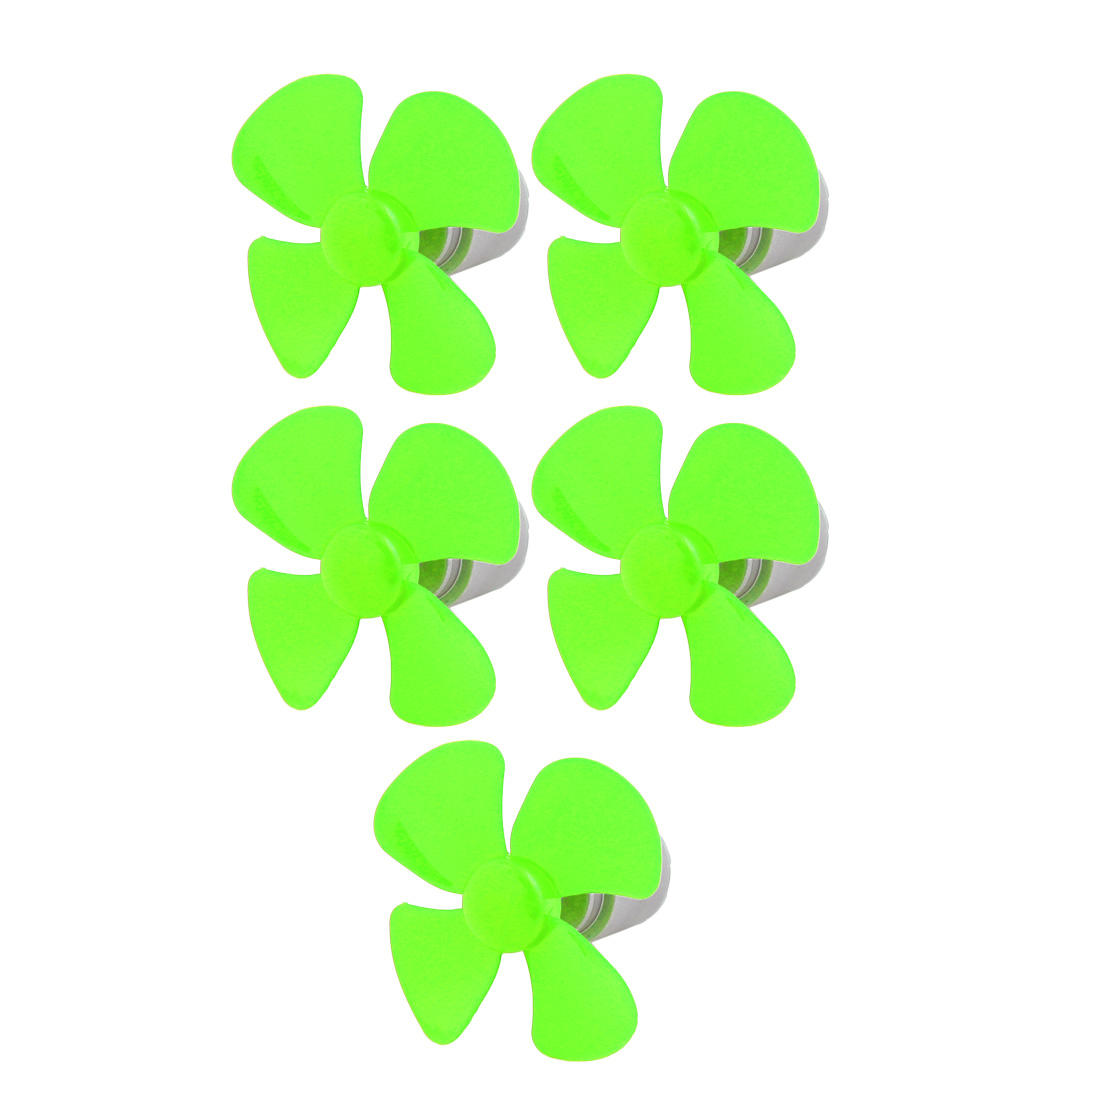 5pcs DC 3V 0.13A 12500RPM Strong Force Motor 4 Blades 56mm Green Propeller for RC Aircraft